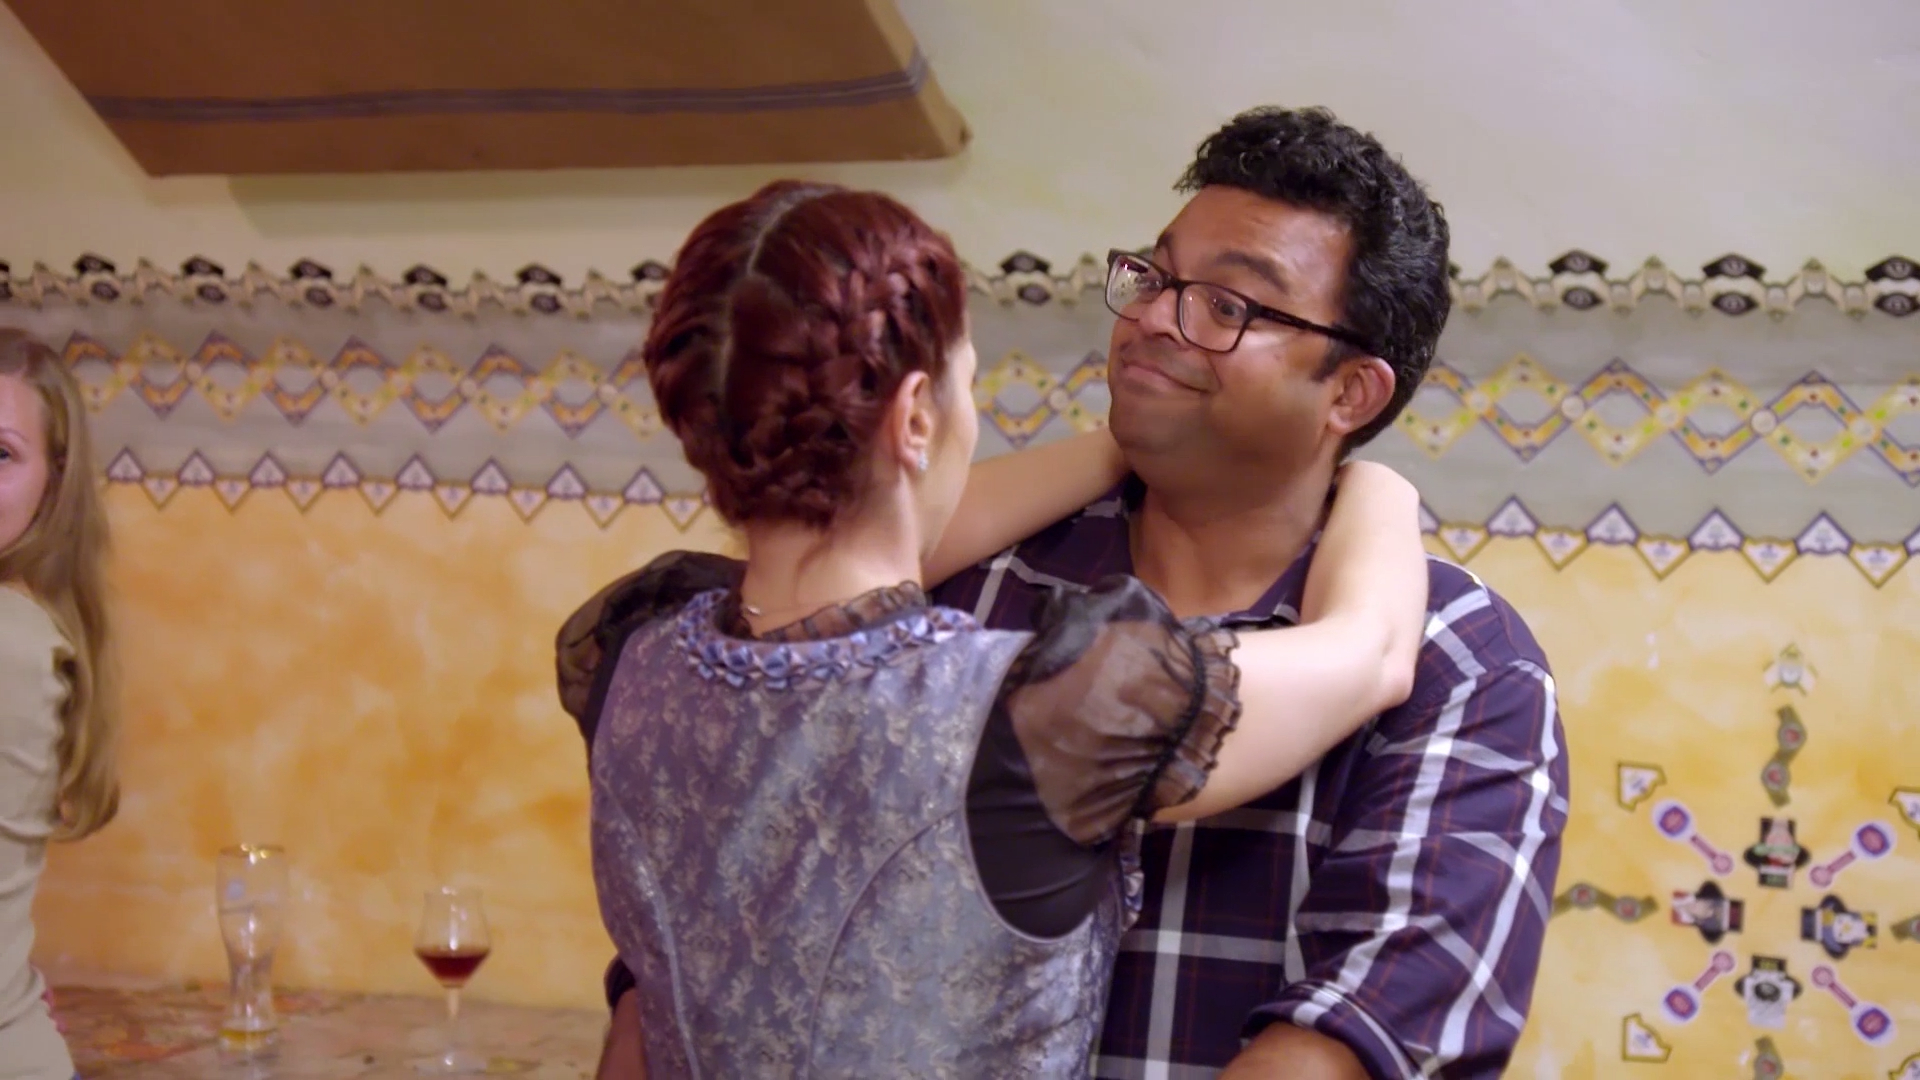 Newlyweds are put to the test as Polka dance instructor flirts with Deepesh